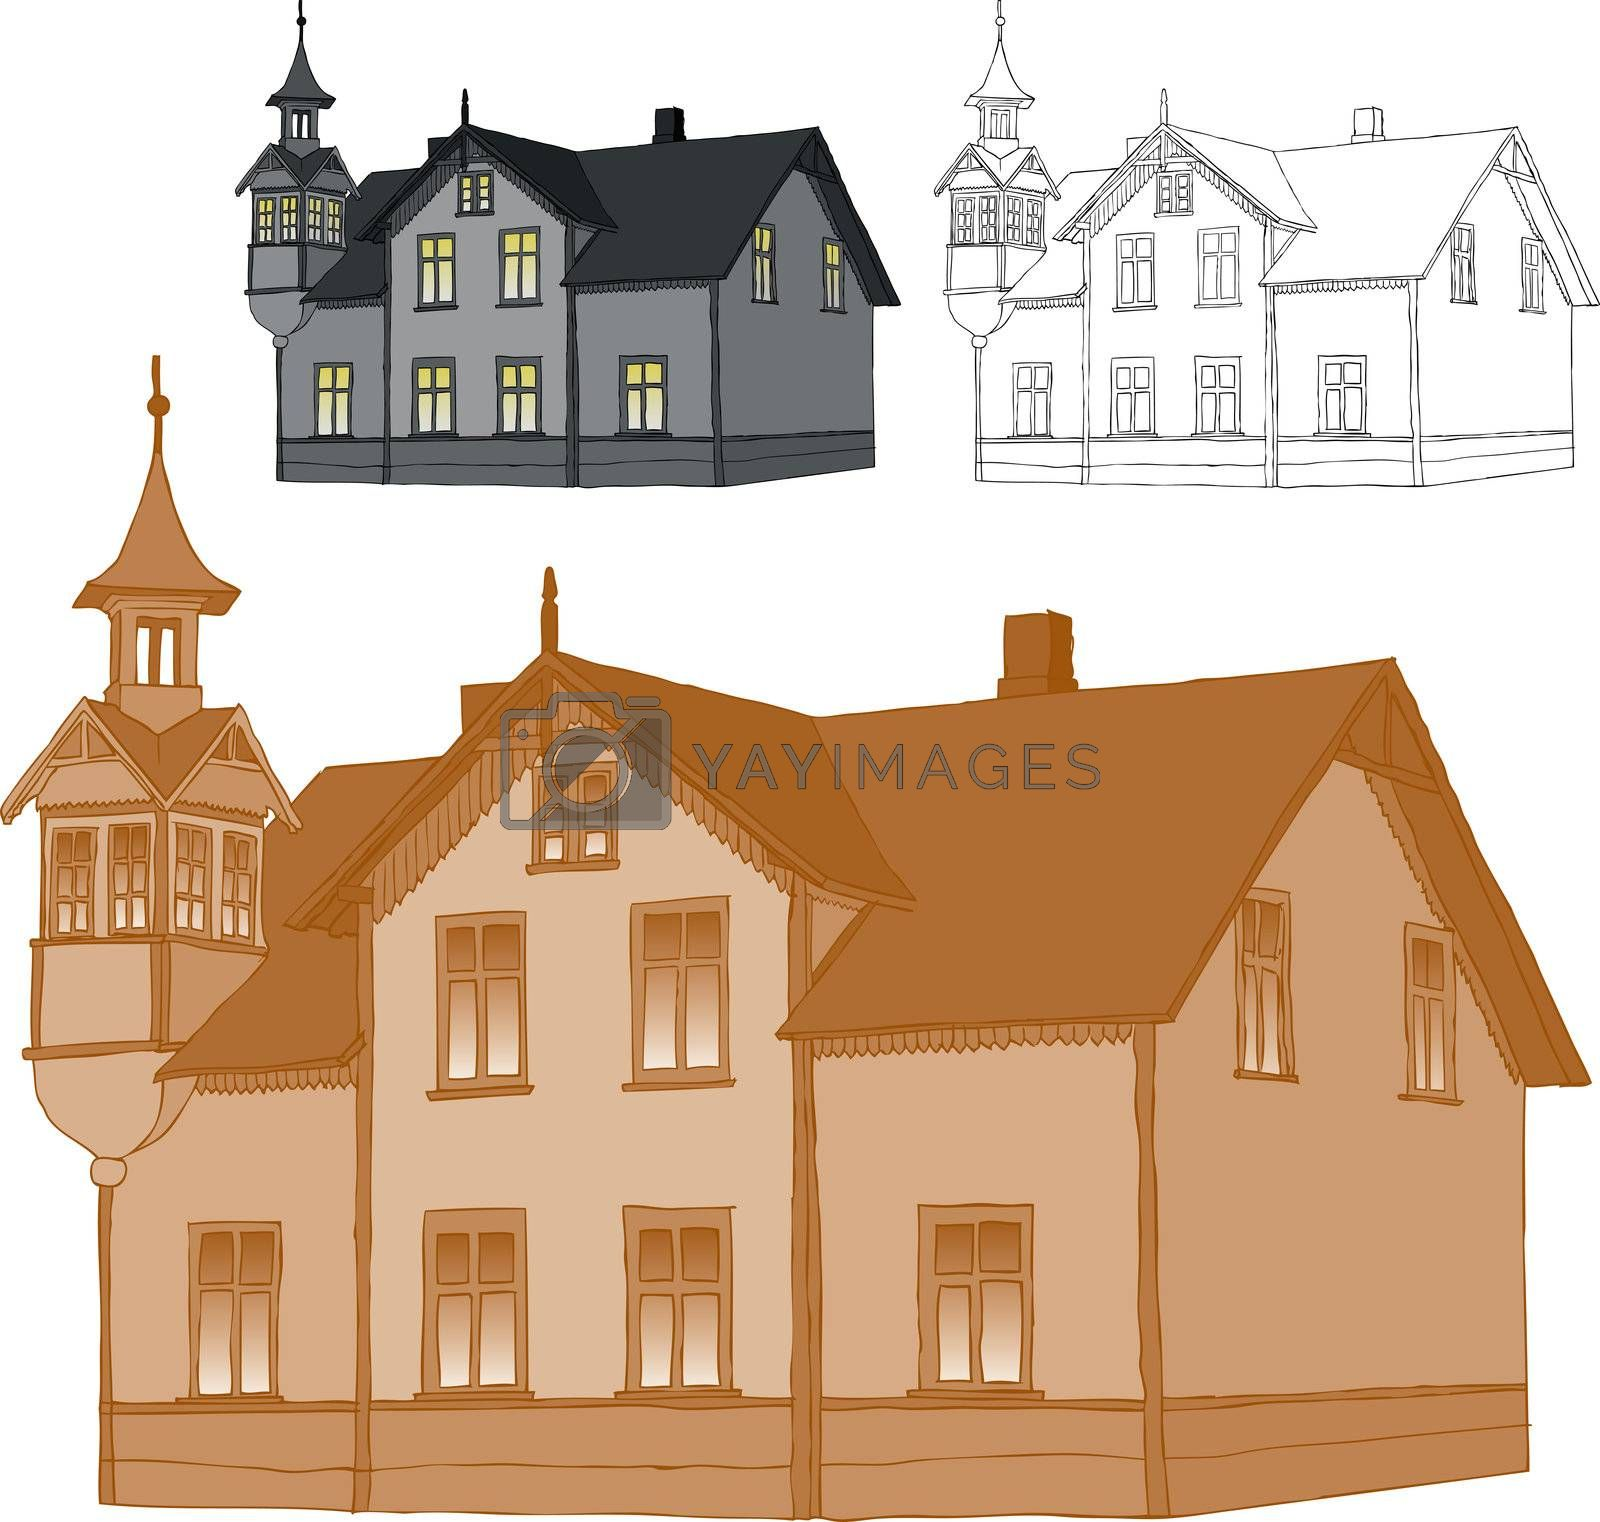 Royalty free image of Old family house by ints